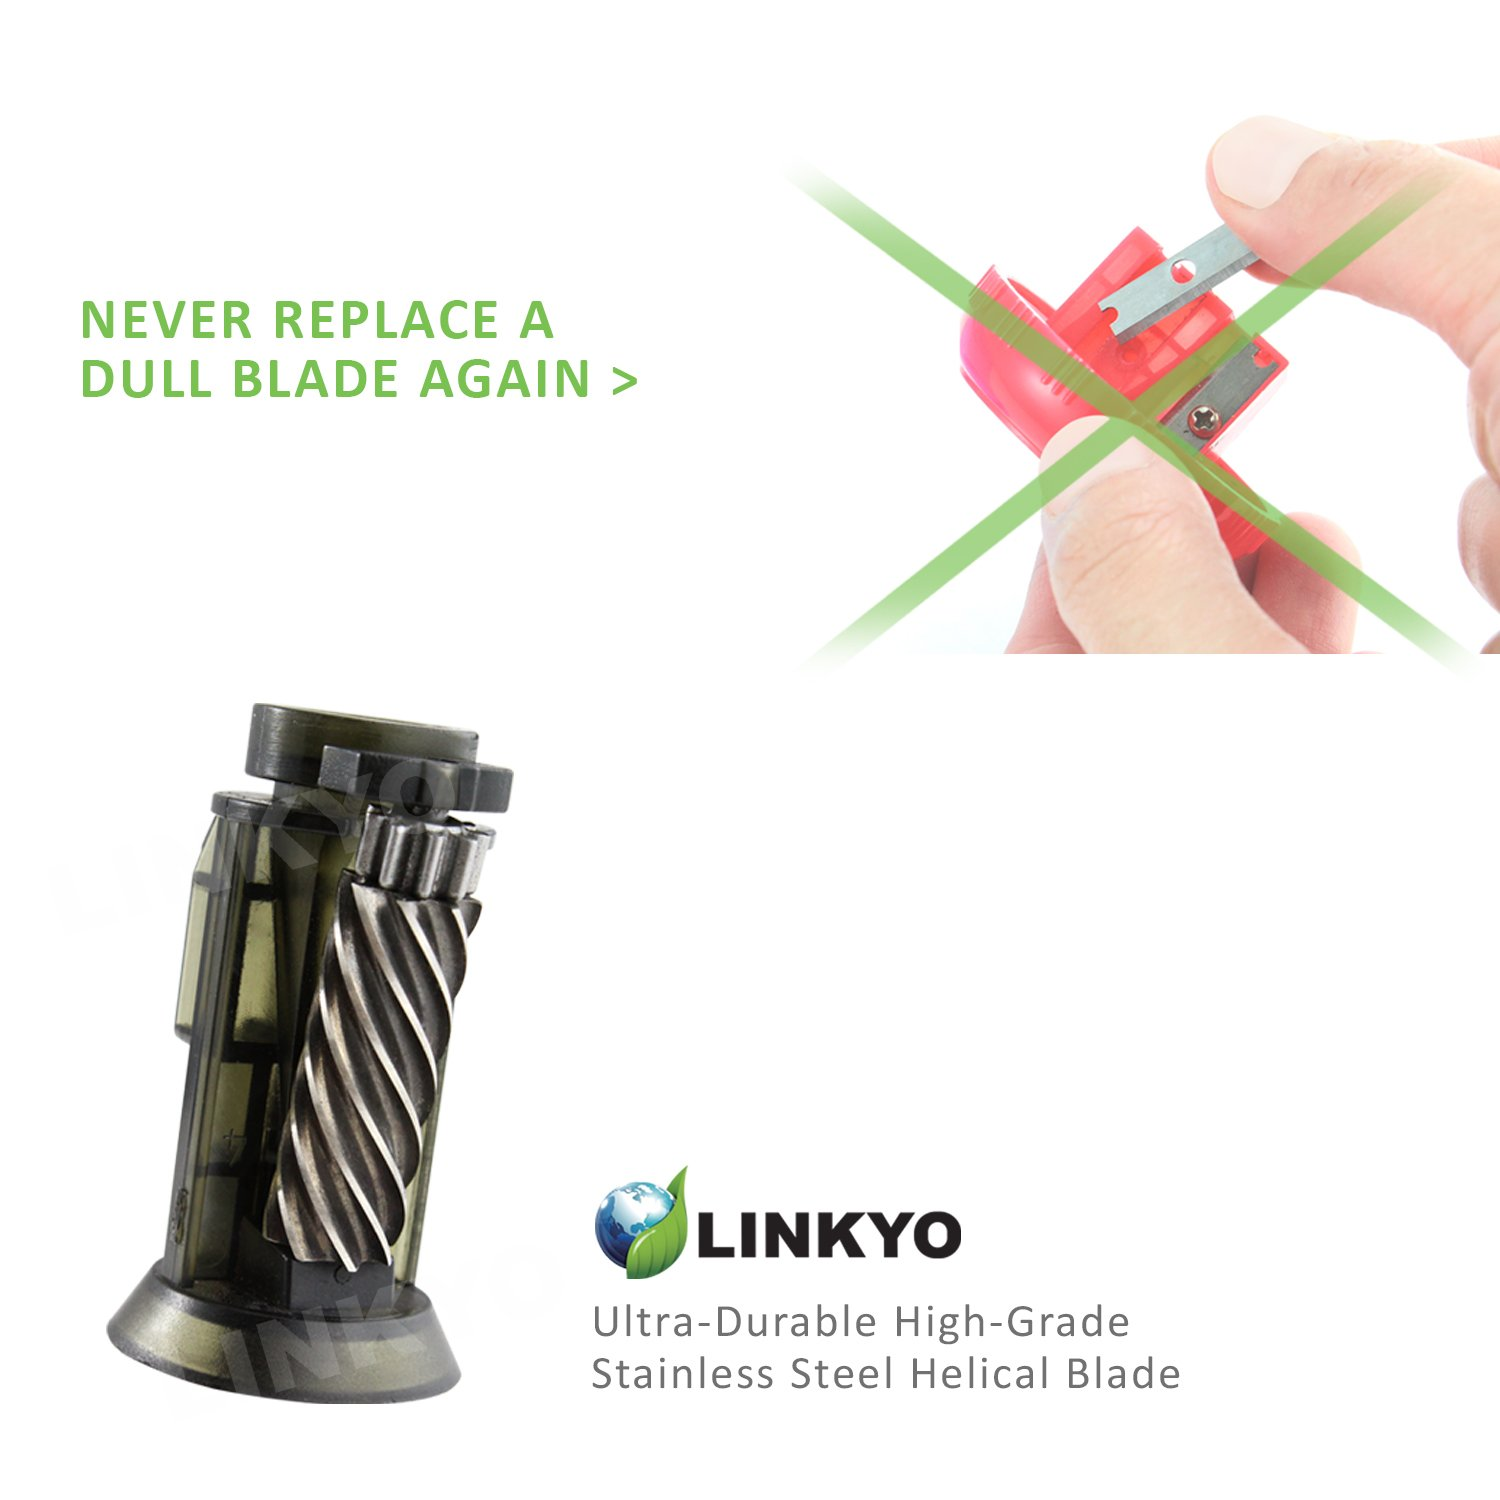 LINKYO Electric Pencil Sharpener with Automatic Smart Sensor for Kids and Home Use, Gray by LINKYO (Image #7)